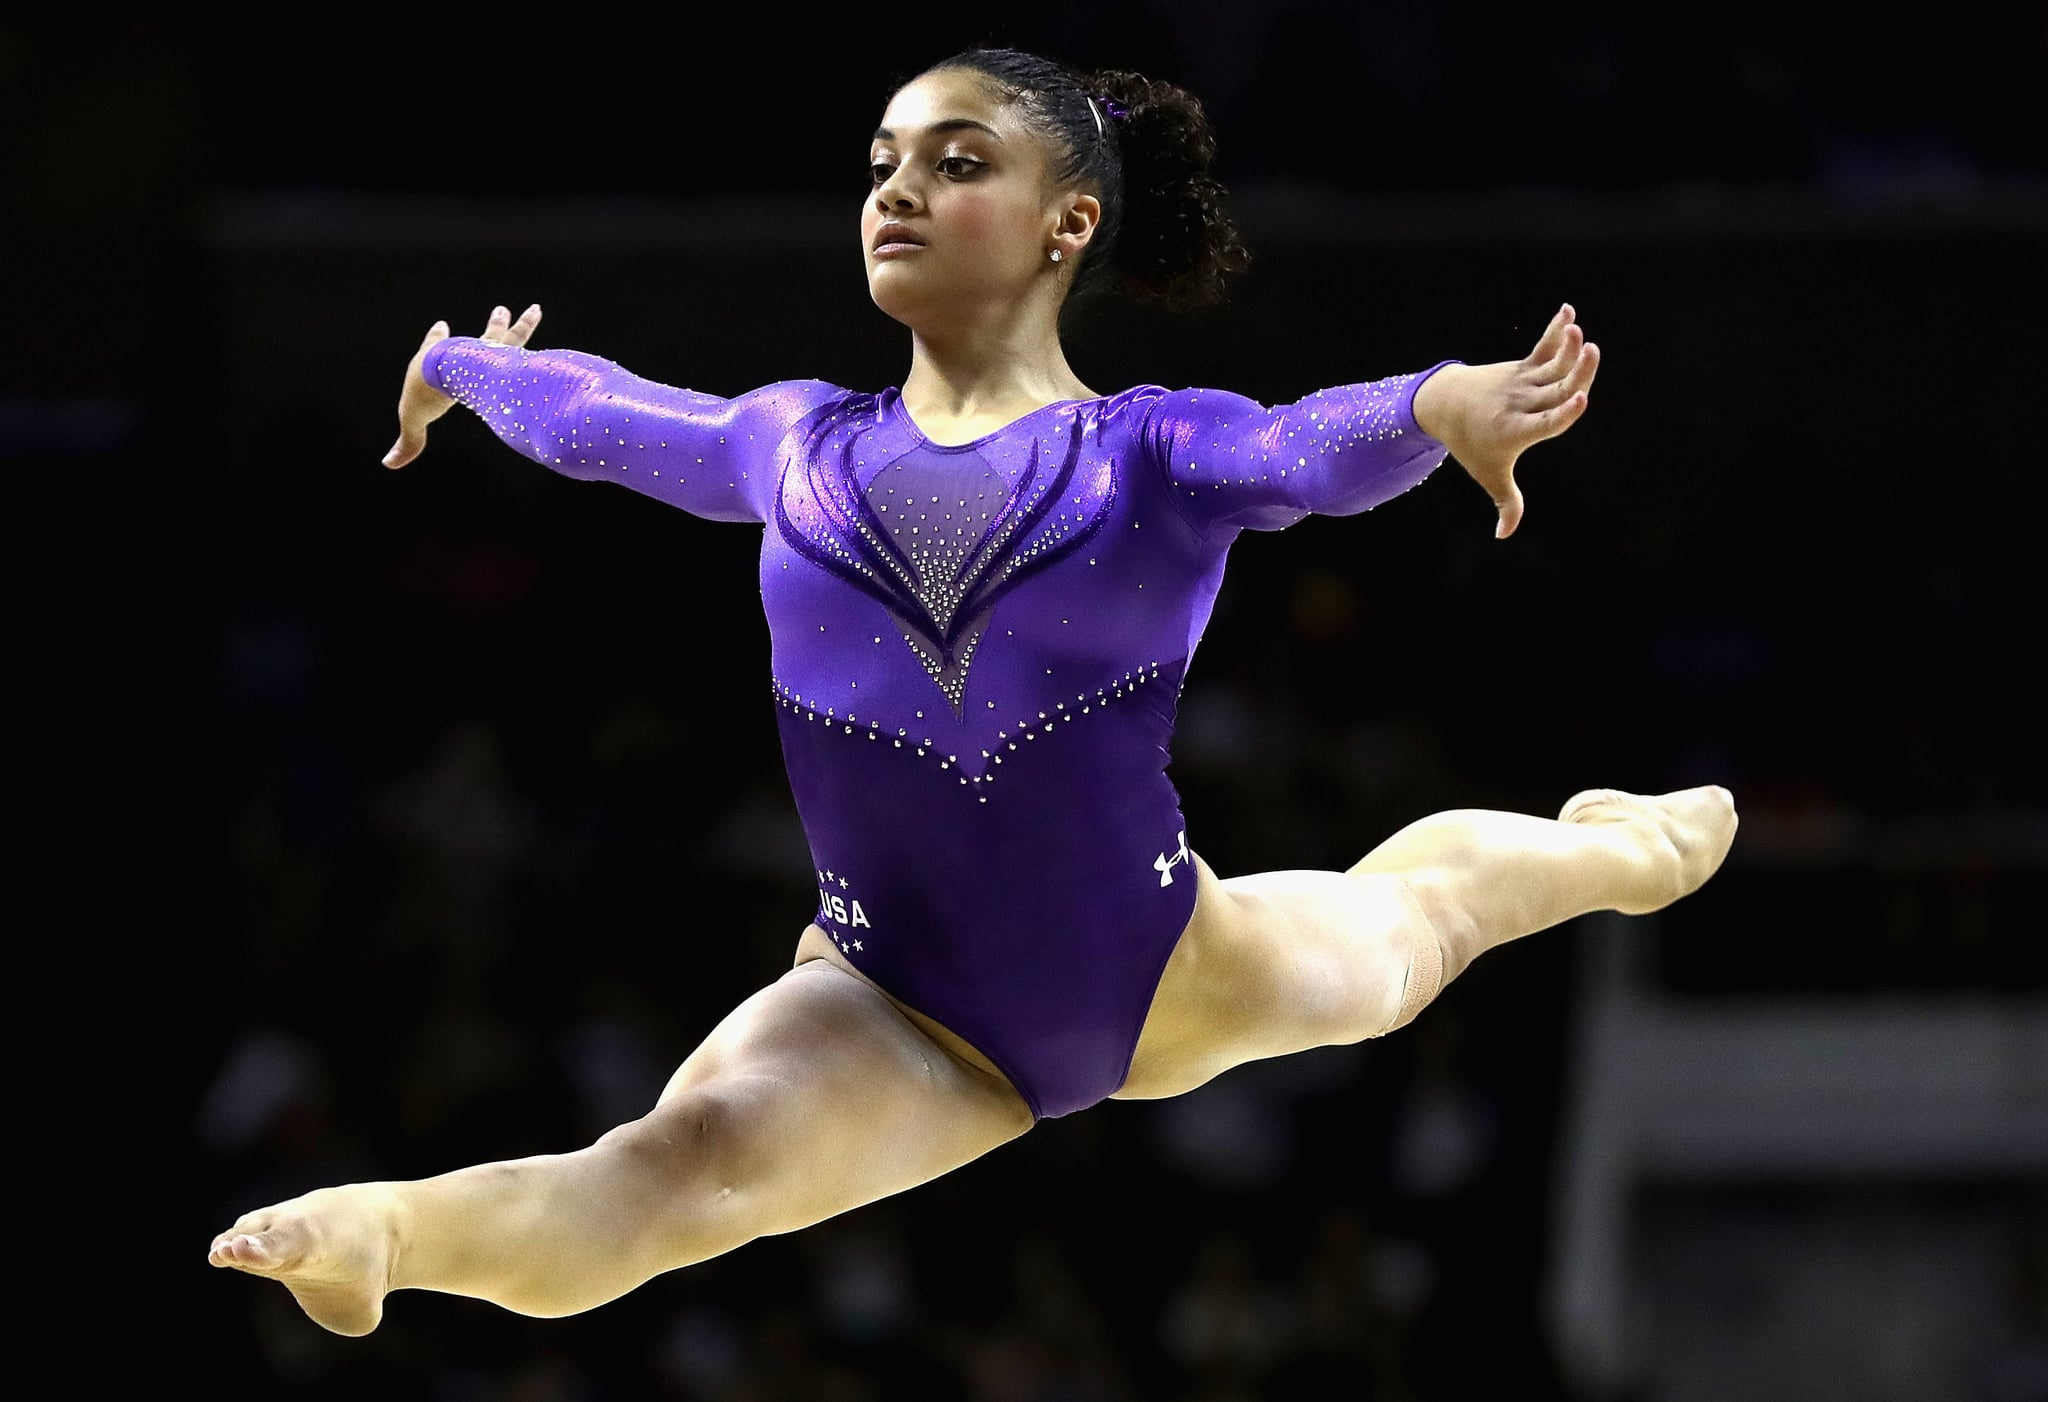 Q&A with Laurie Hernandez | NBC Olympics